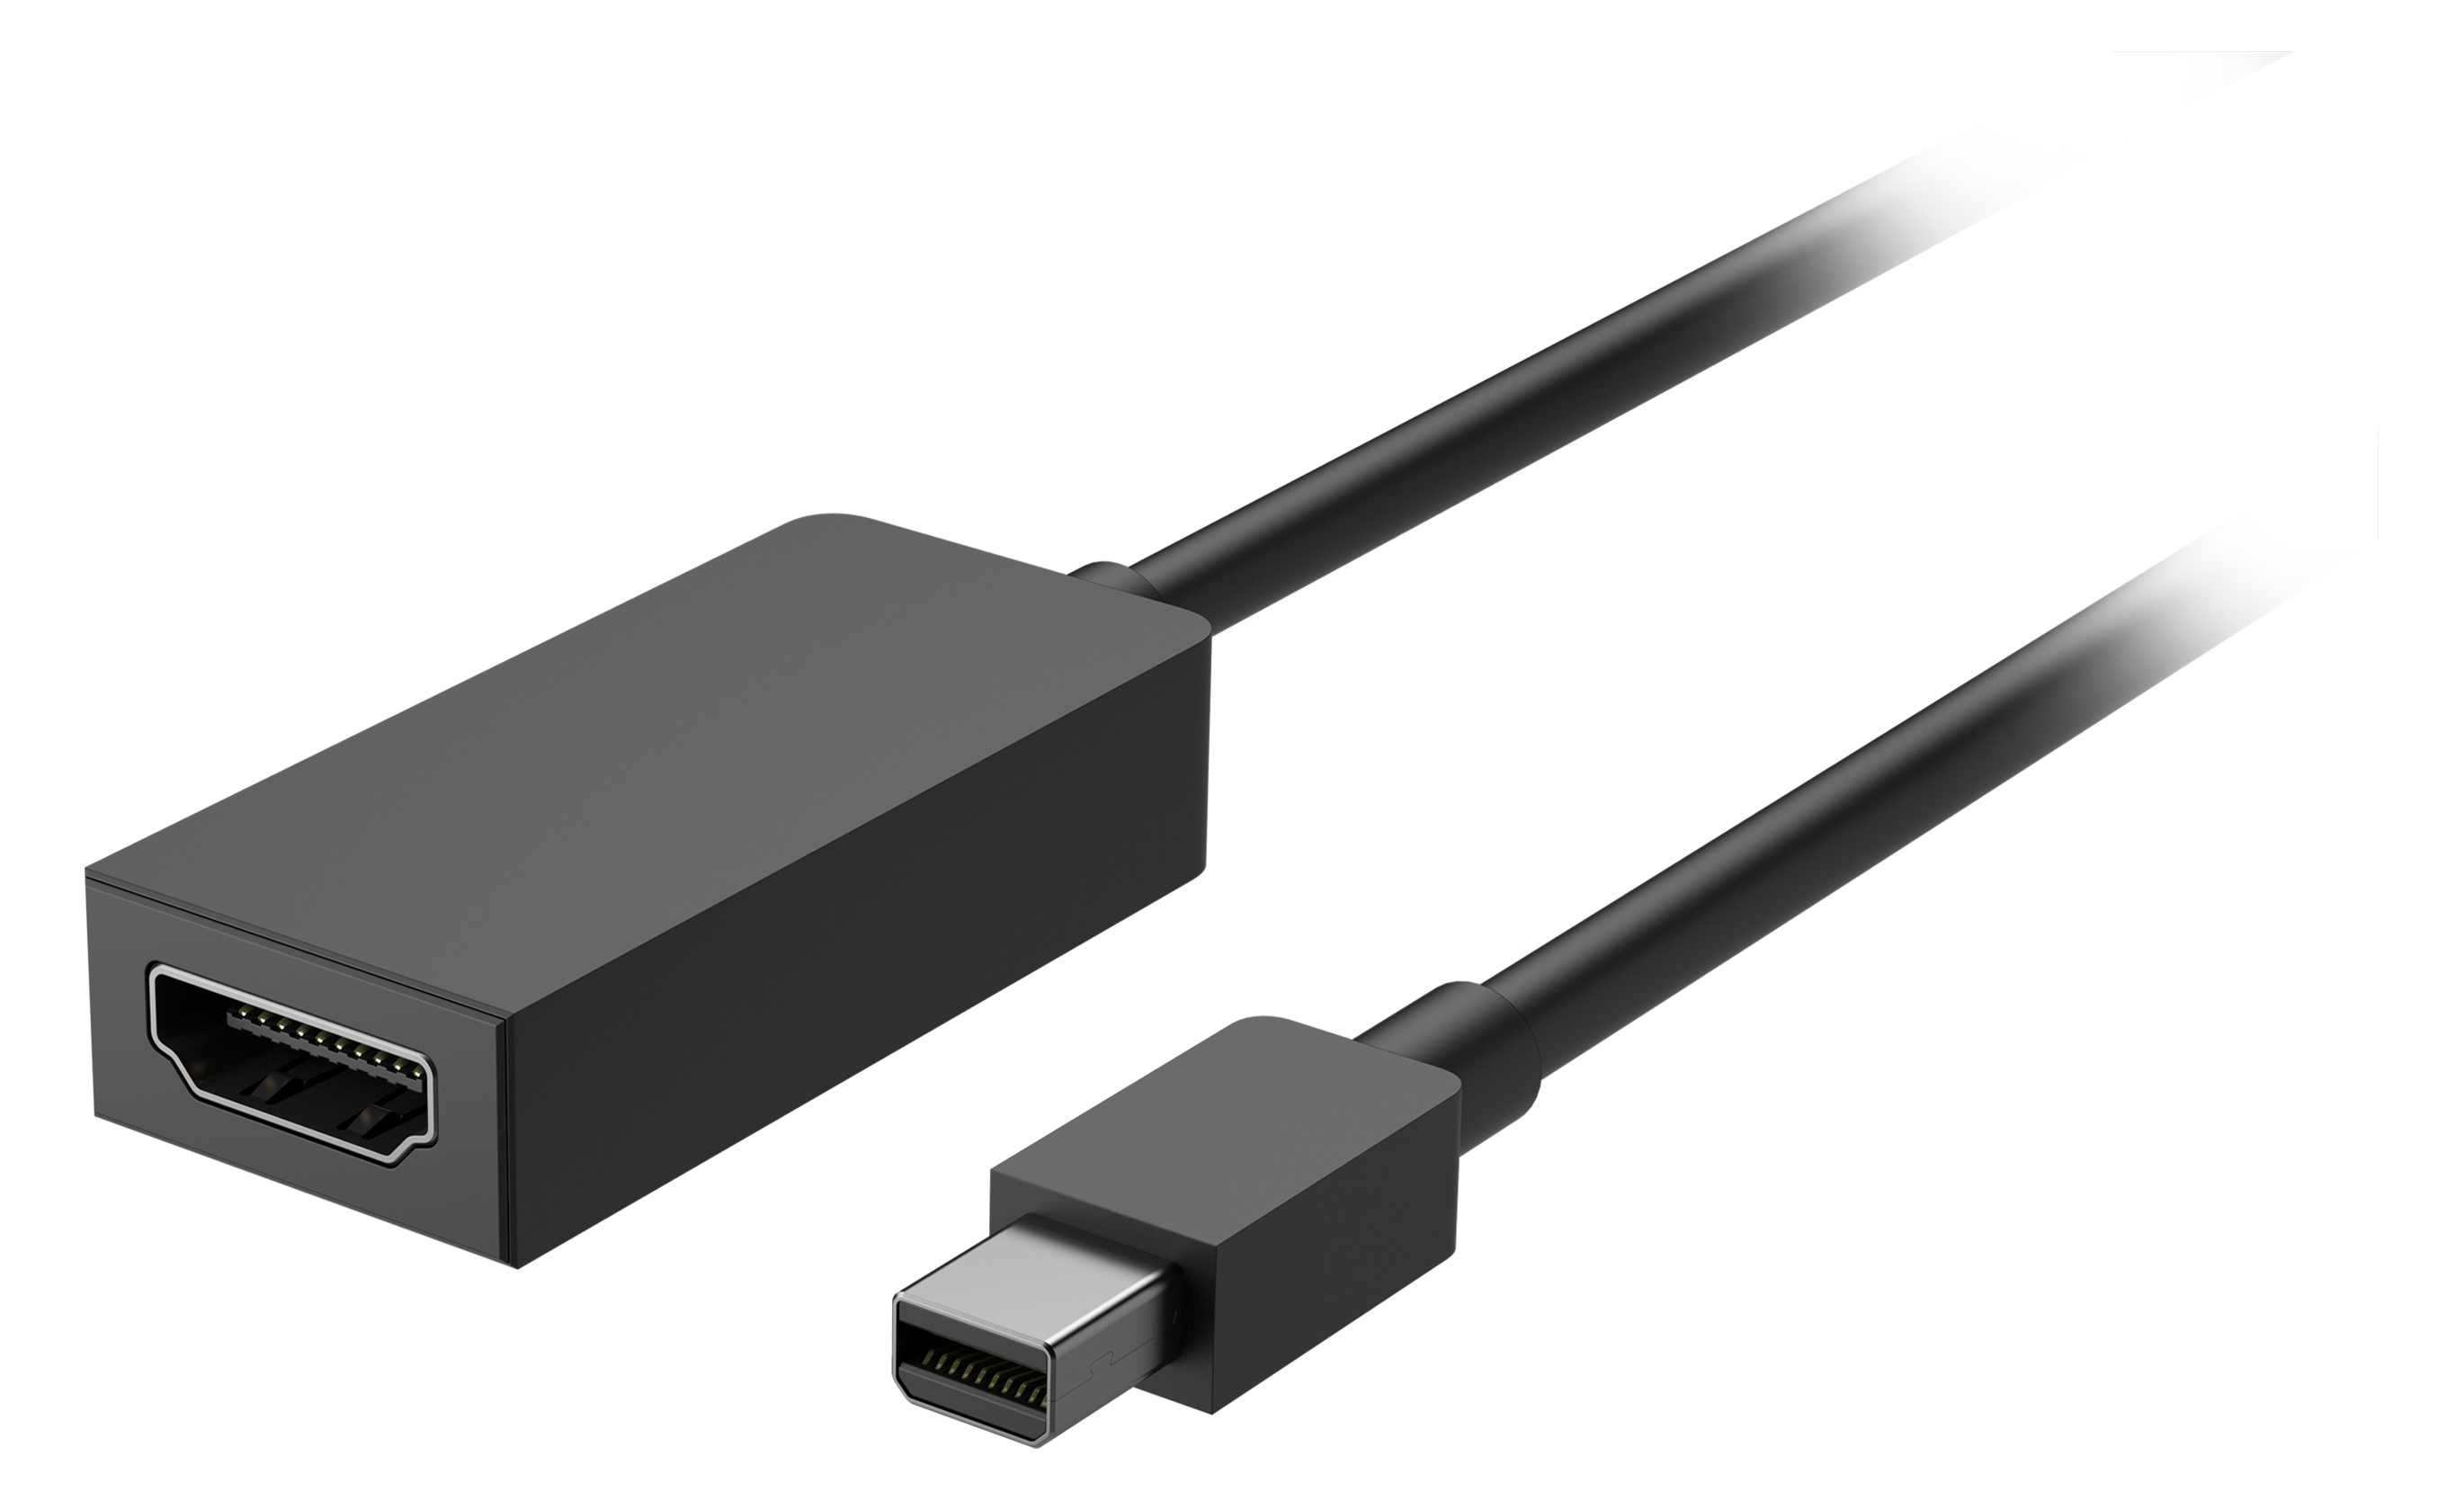 Image of Adattatore da Mini DisplayPort a HDMI 2.0 per Surface